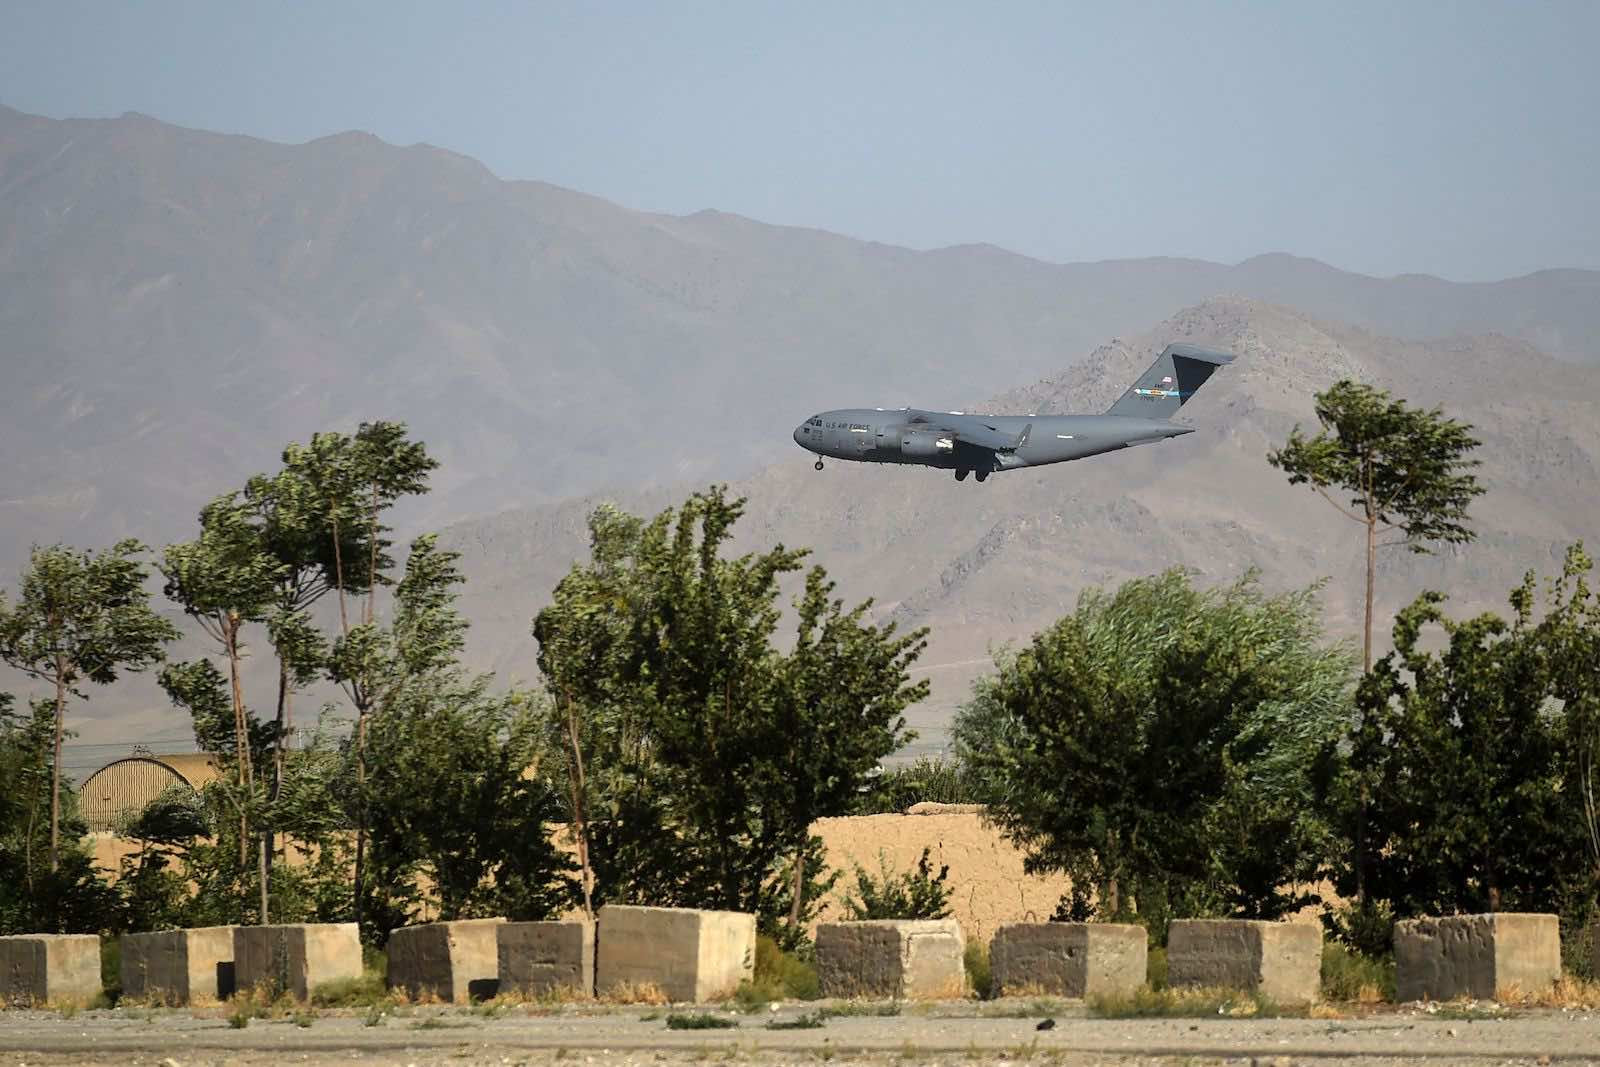 Bagram Air Base, Afghanistan, on 1 July 2021, just before it was abandoned by US forces (Wakil Kohsar/AFP via Getty Images)